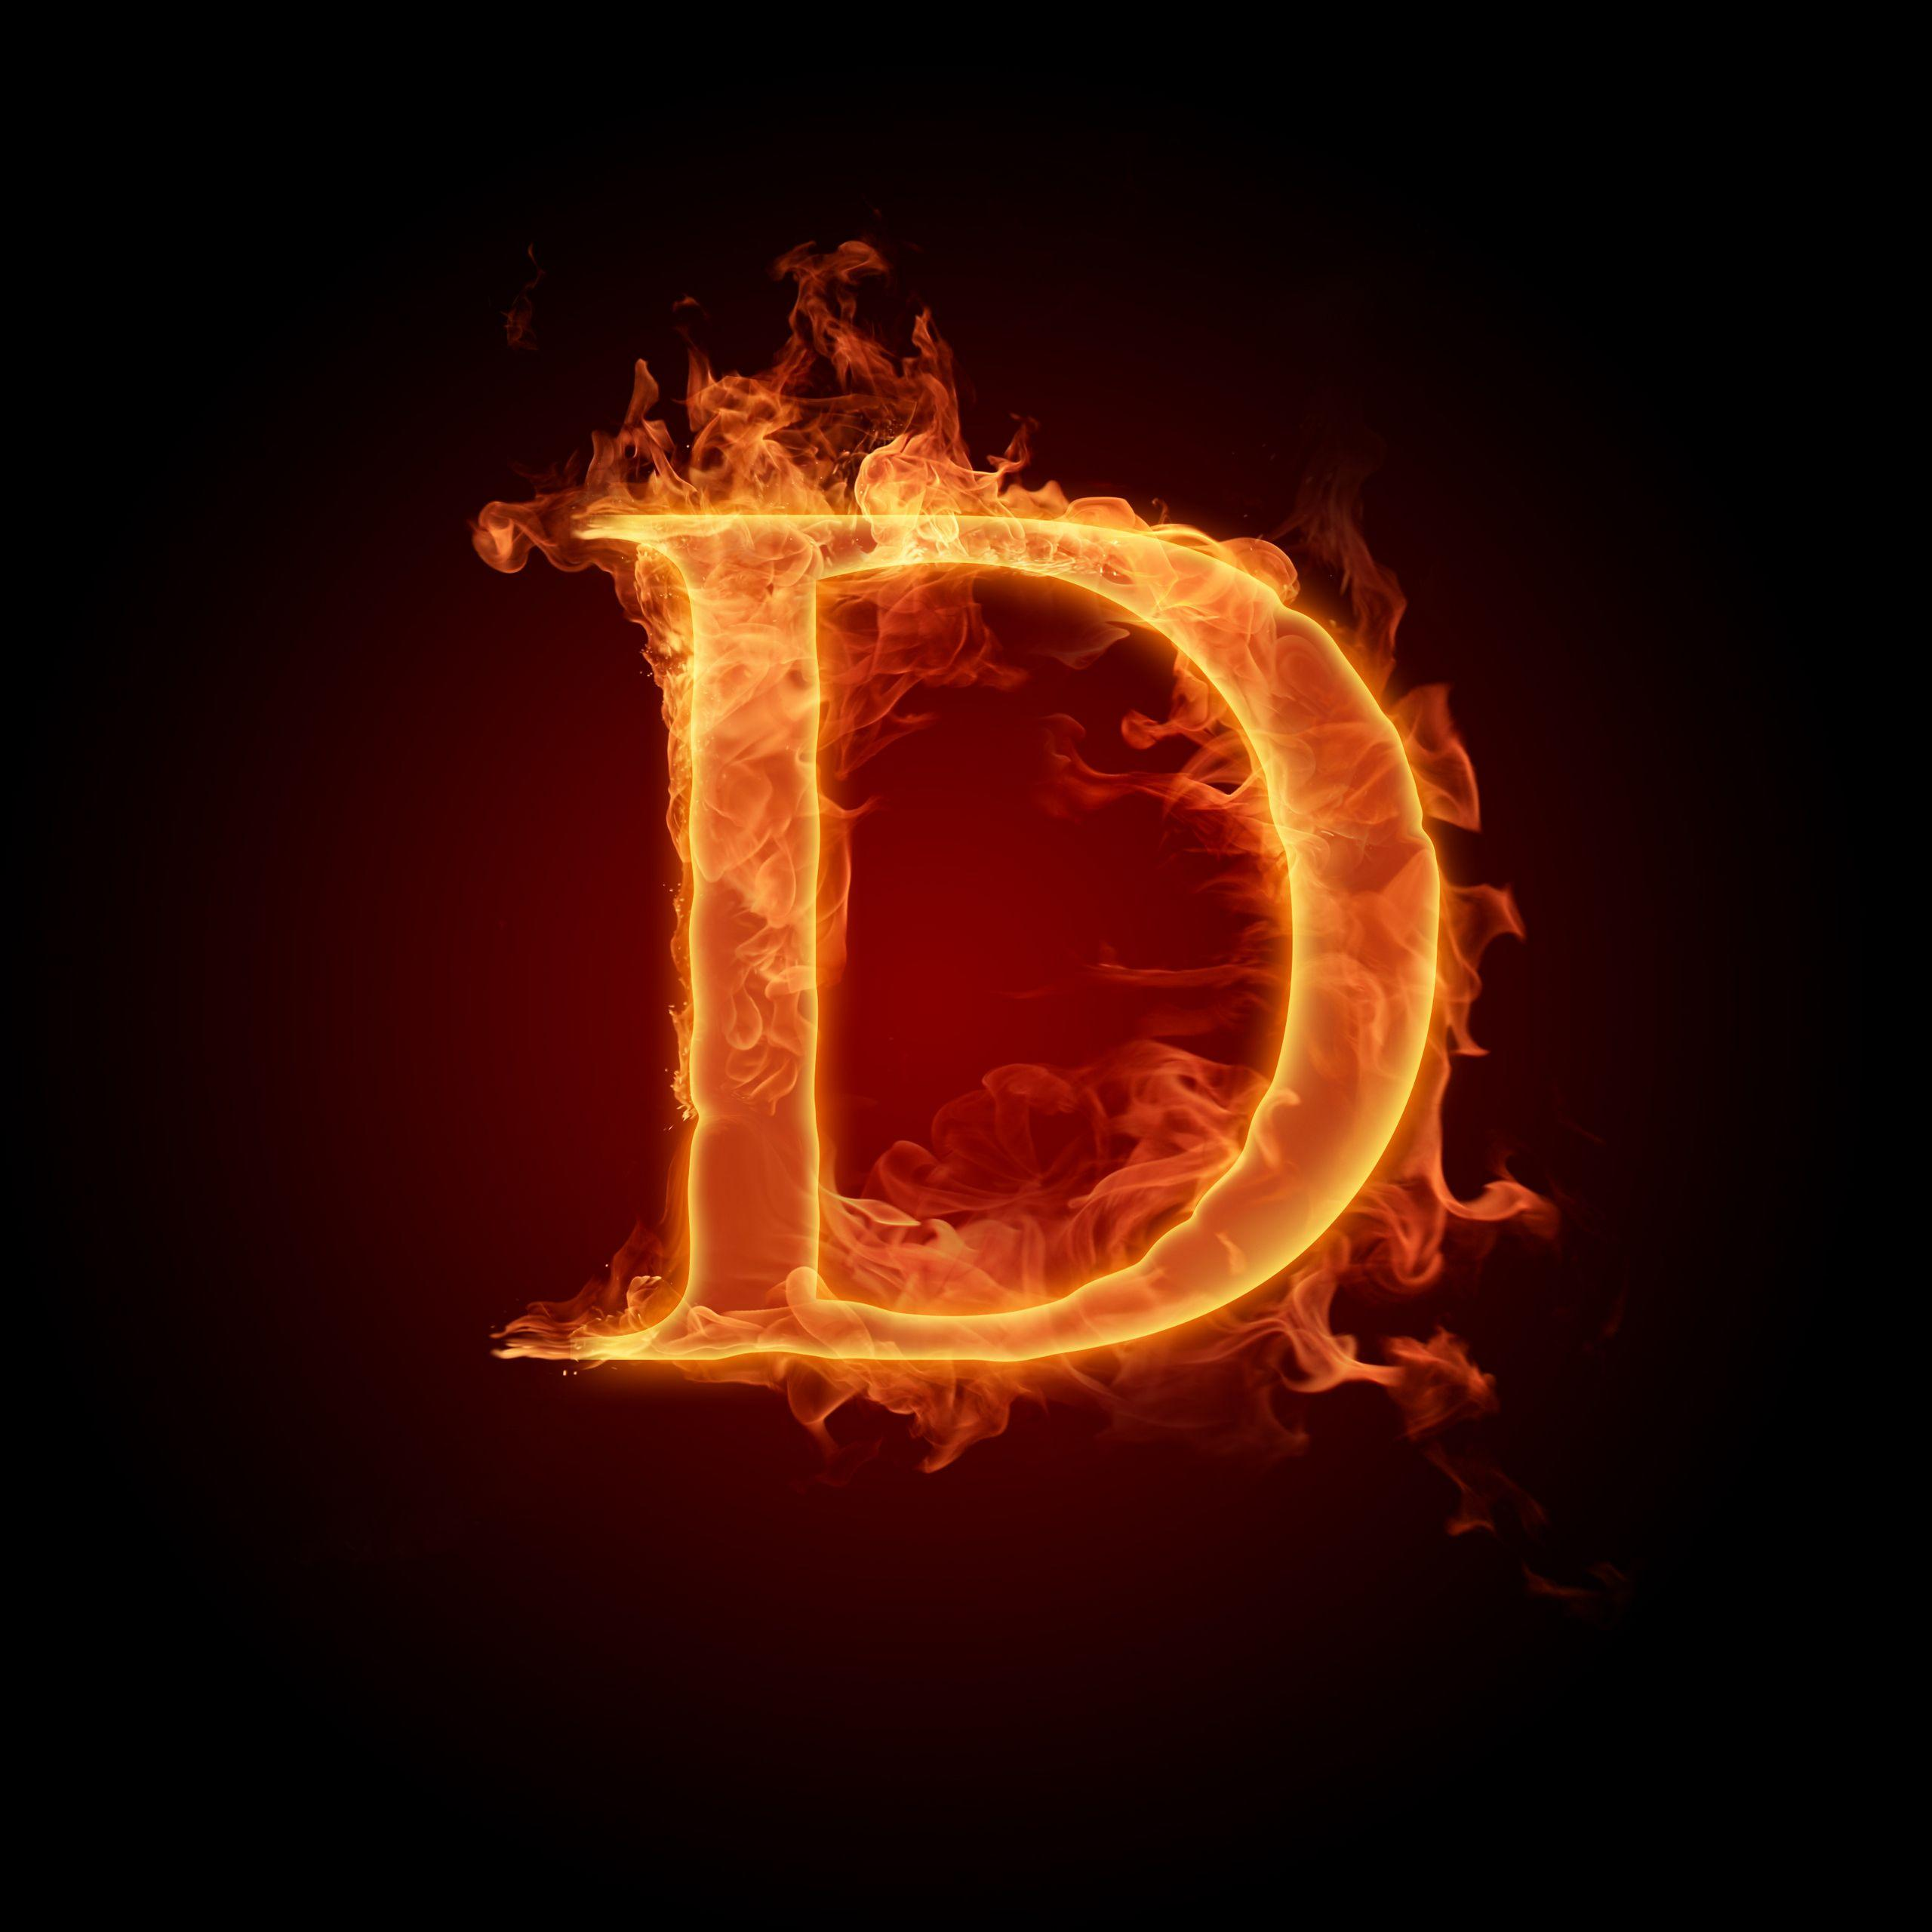 The Letter D Images The Letter D Hd Wallpaper And Background Photos